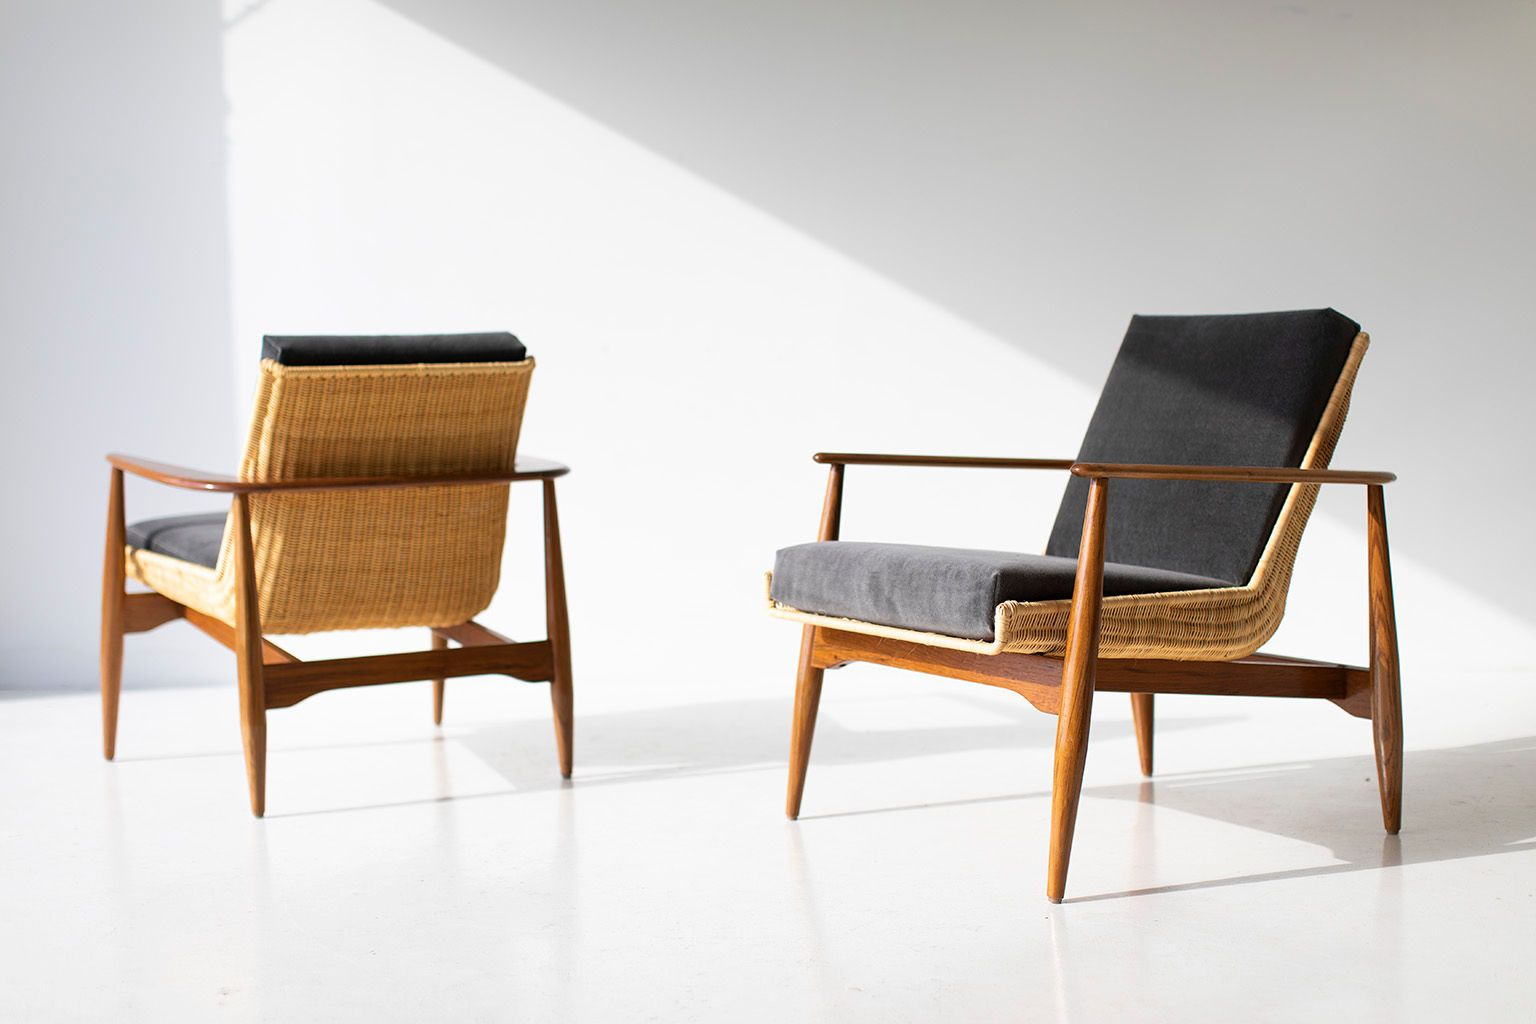 0T3A6972-lawrence-peabody-wicker-lounge-chairs-02